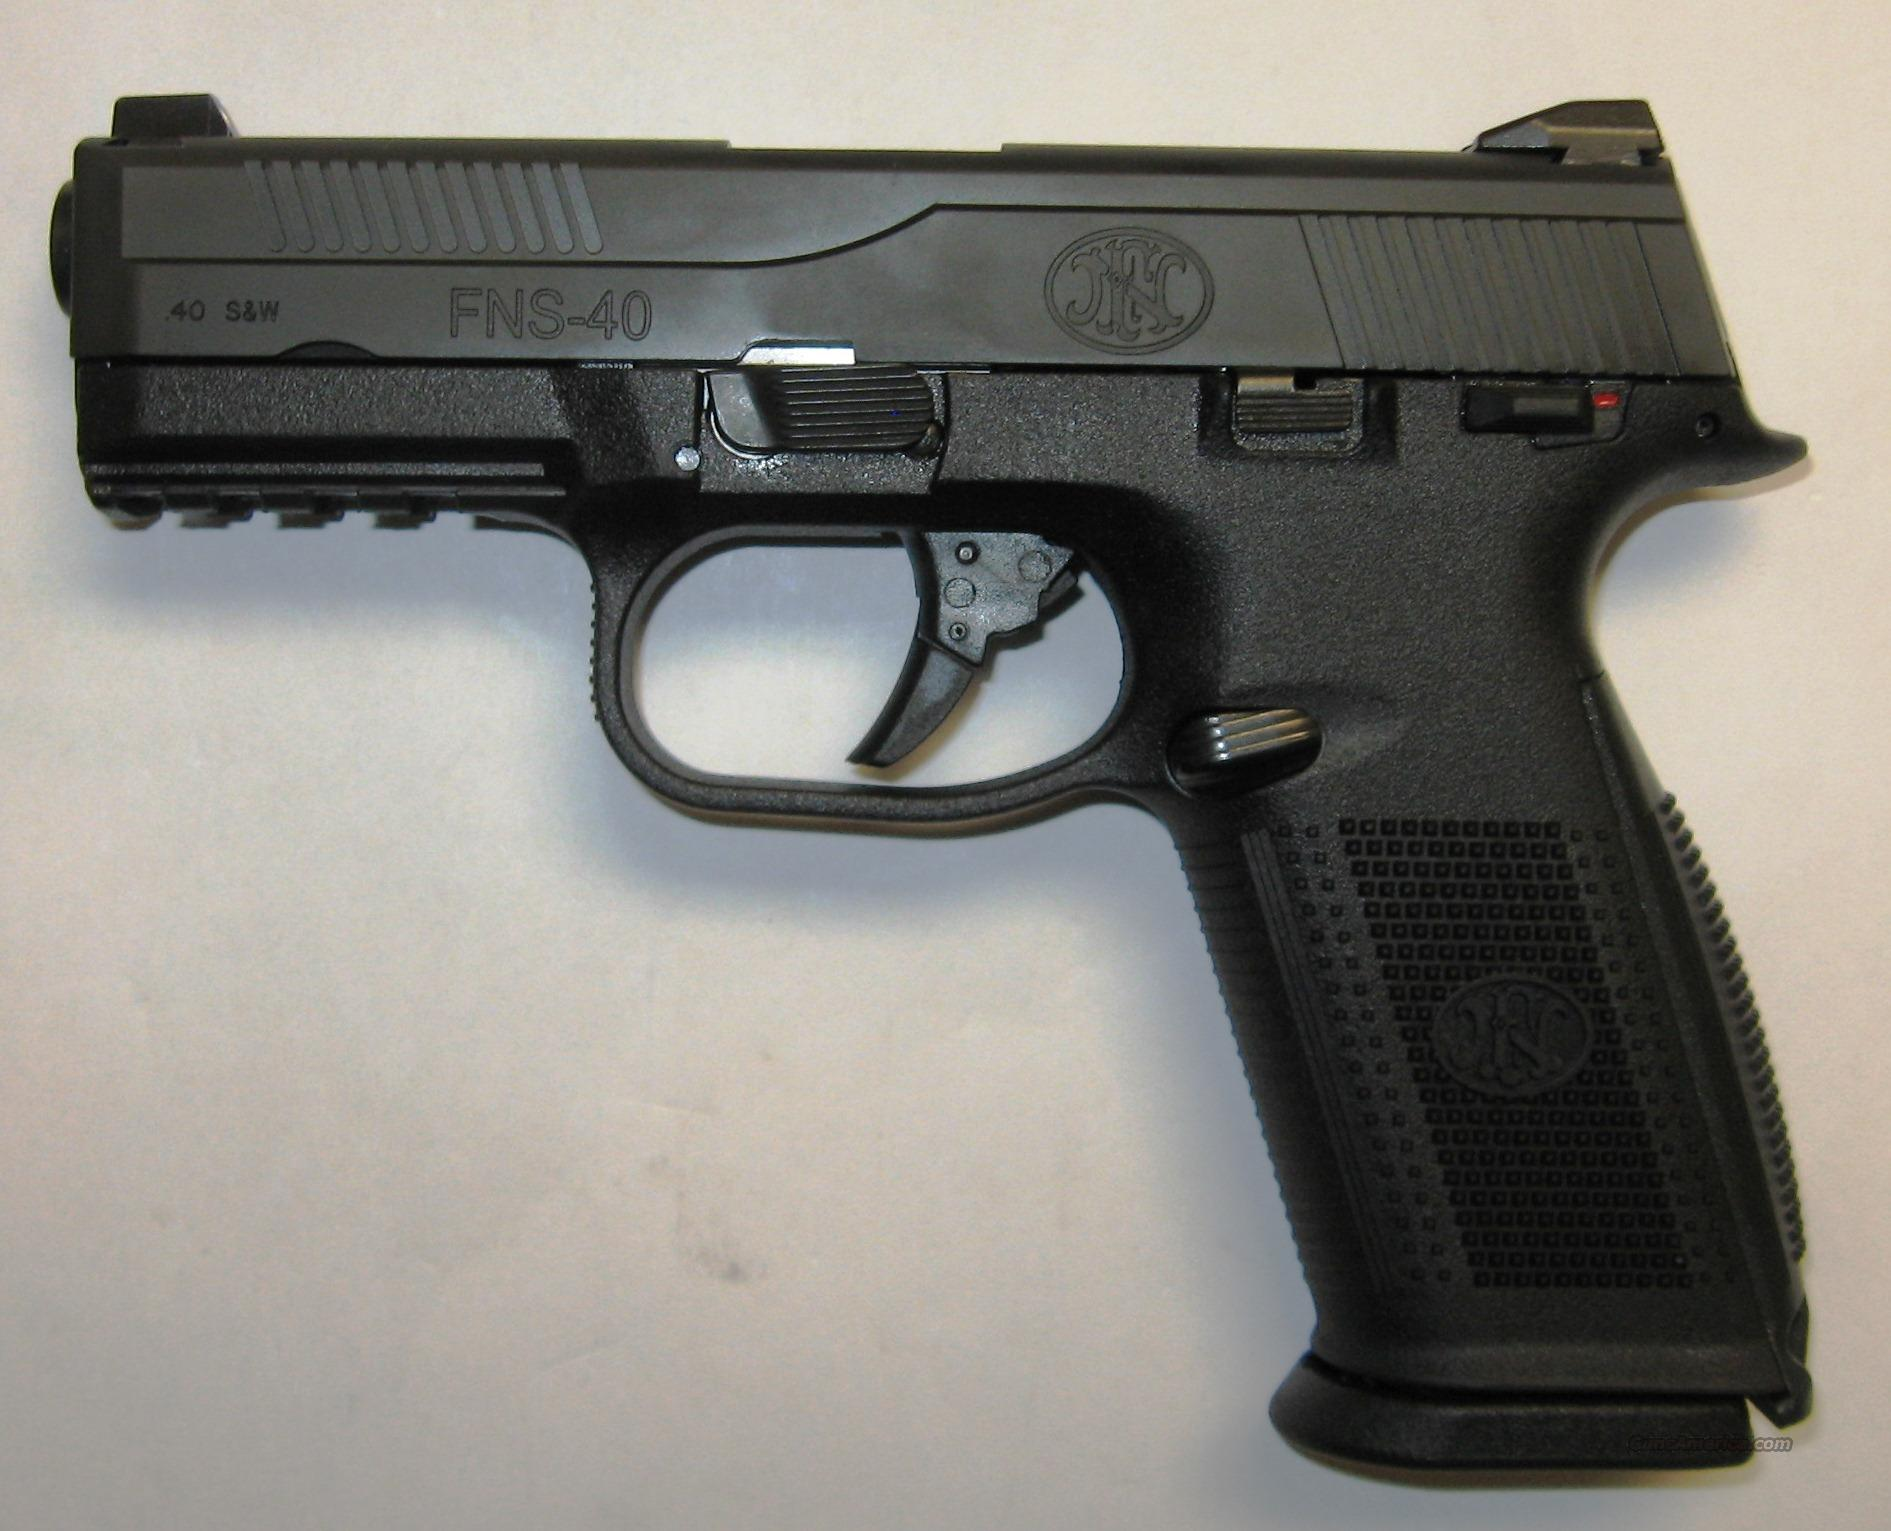 FNH FNS 40 Black W/ Nightsights  Guns > Pistols > FNH - Fabrique Nationale (FN) Pistols > FNP